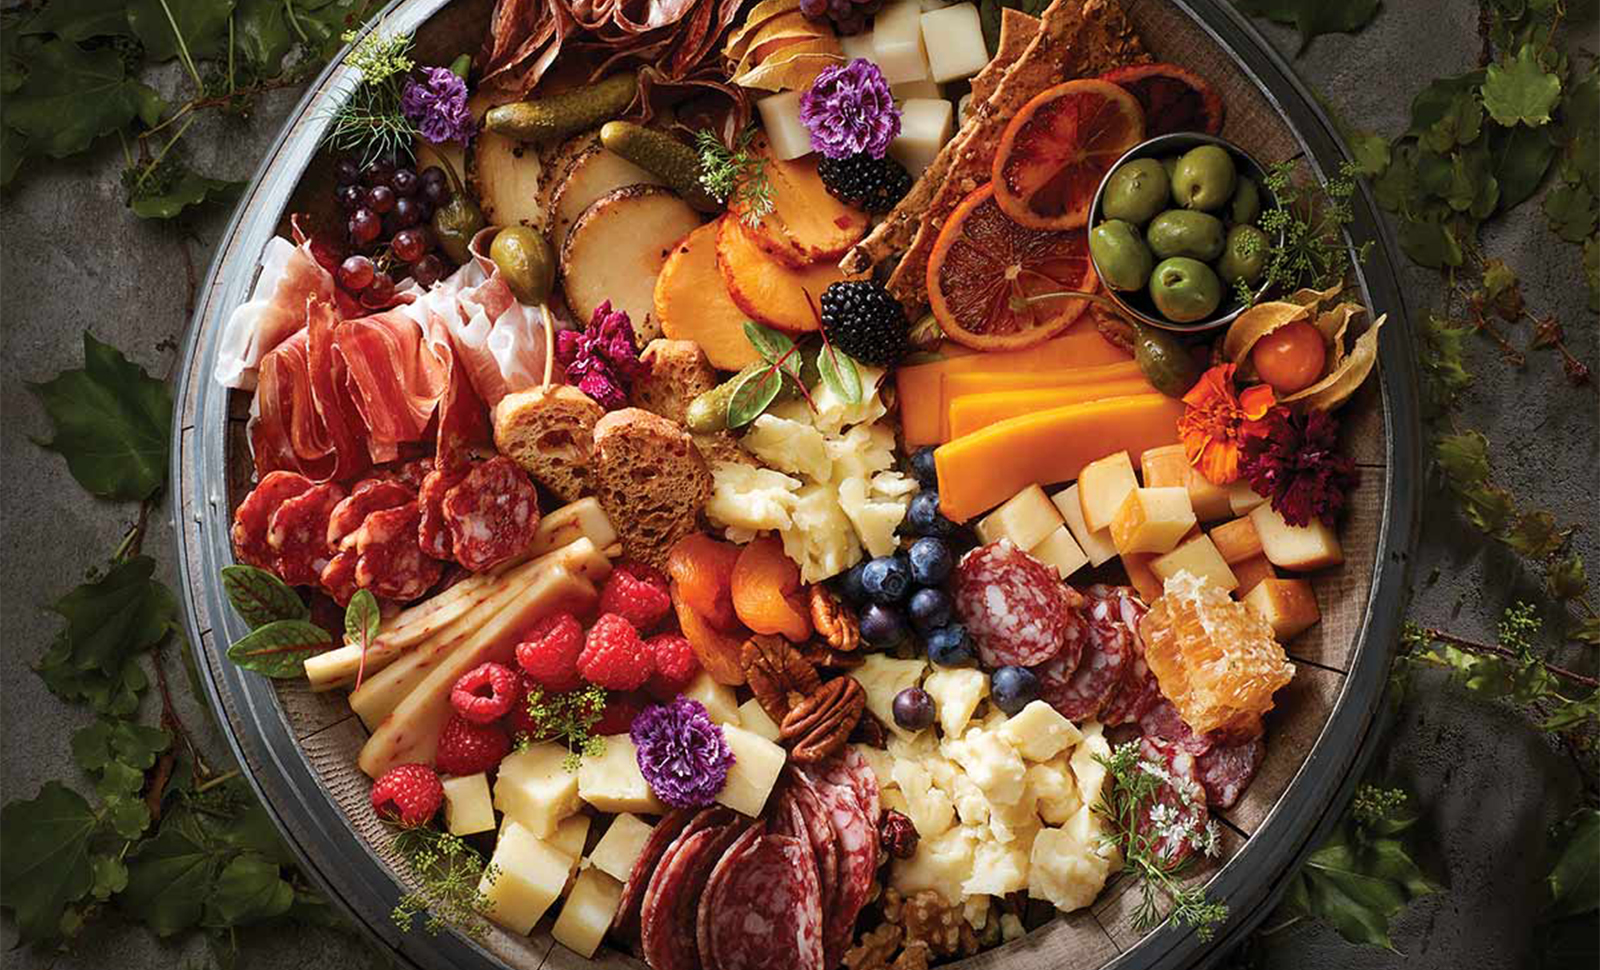 A wooden barrel topped with an assortment of cheeses, meats, fruits and breads